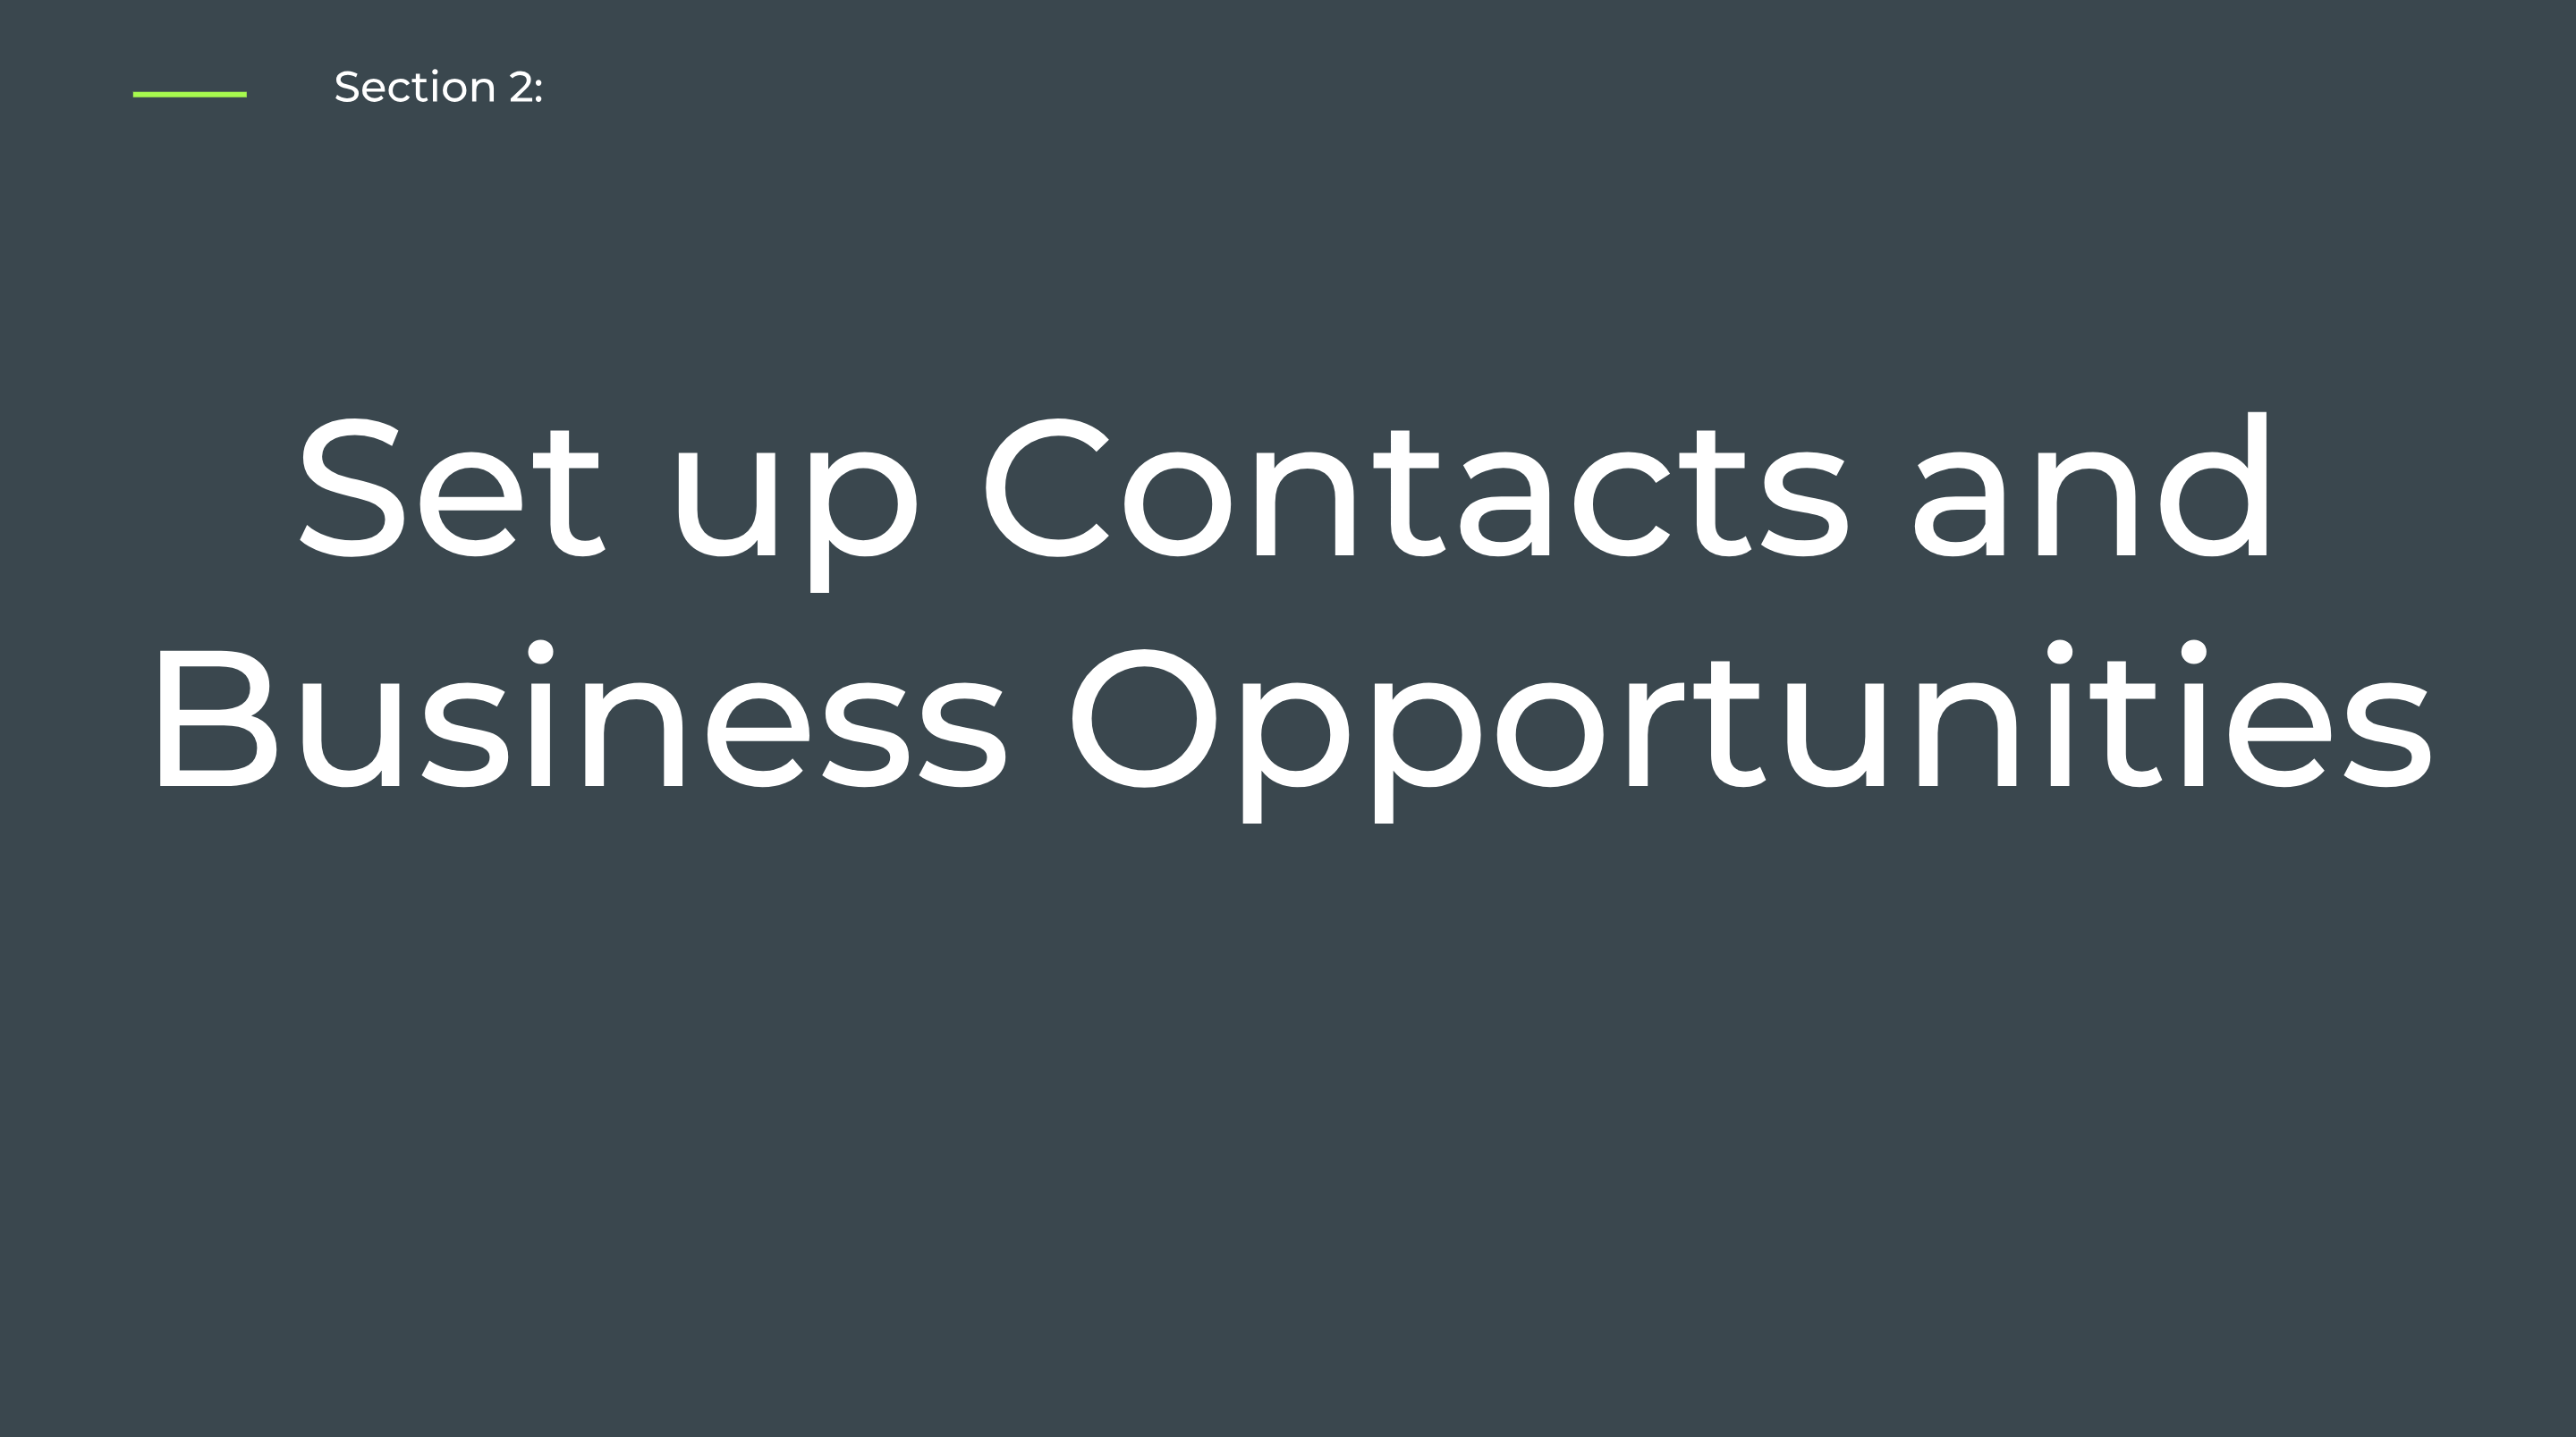 Section 2: Set up Contacts and Business Opportunities - Self-Paced Onboarding for Admins